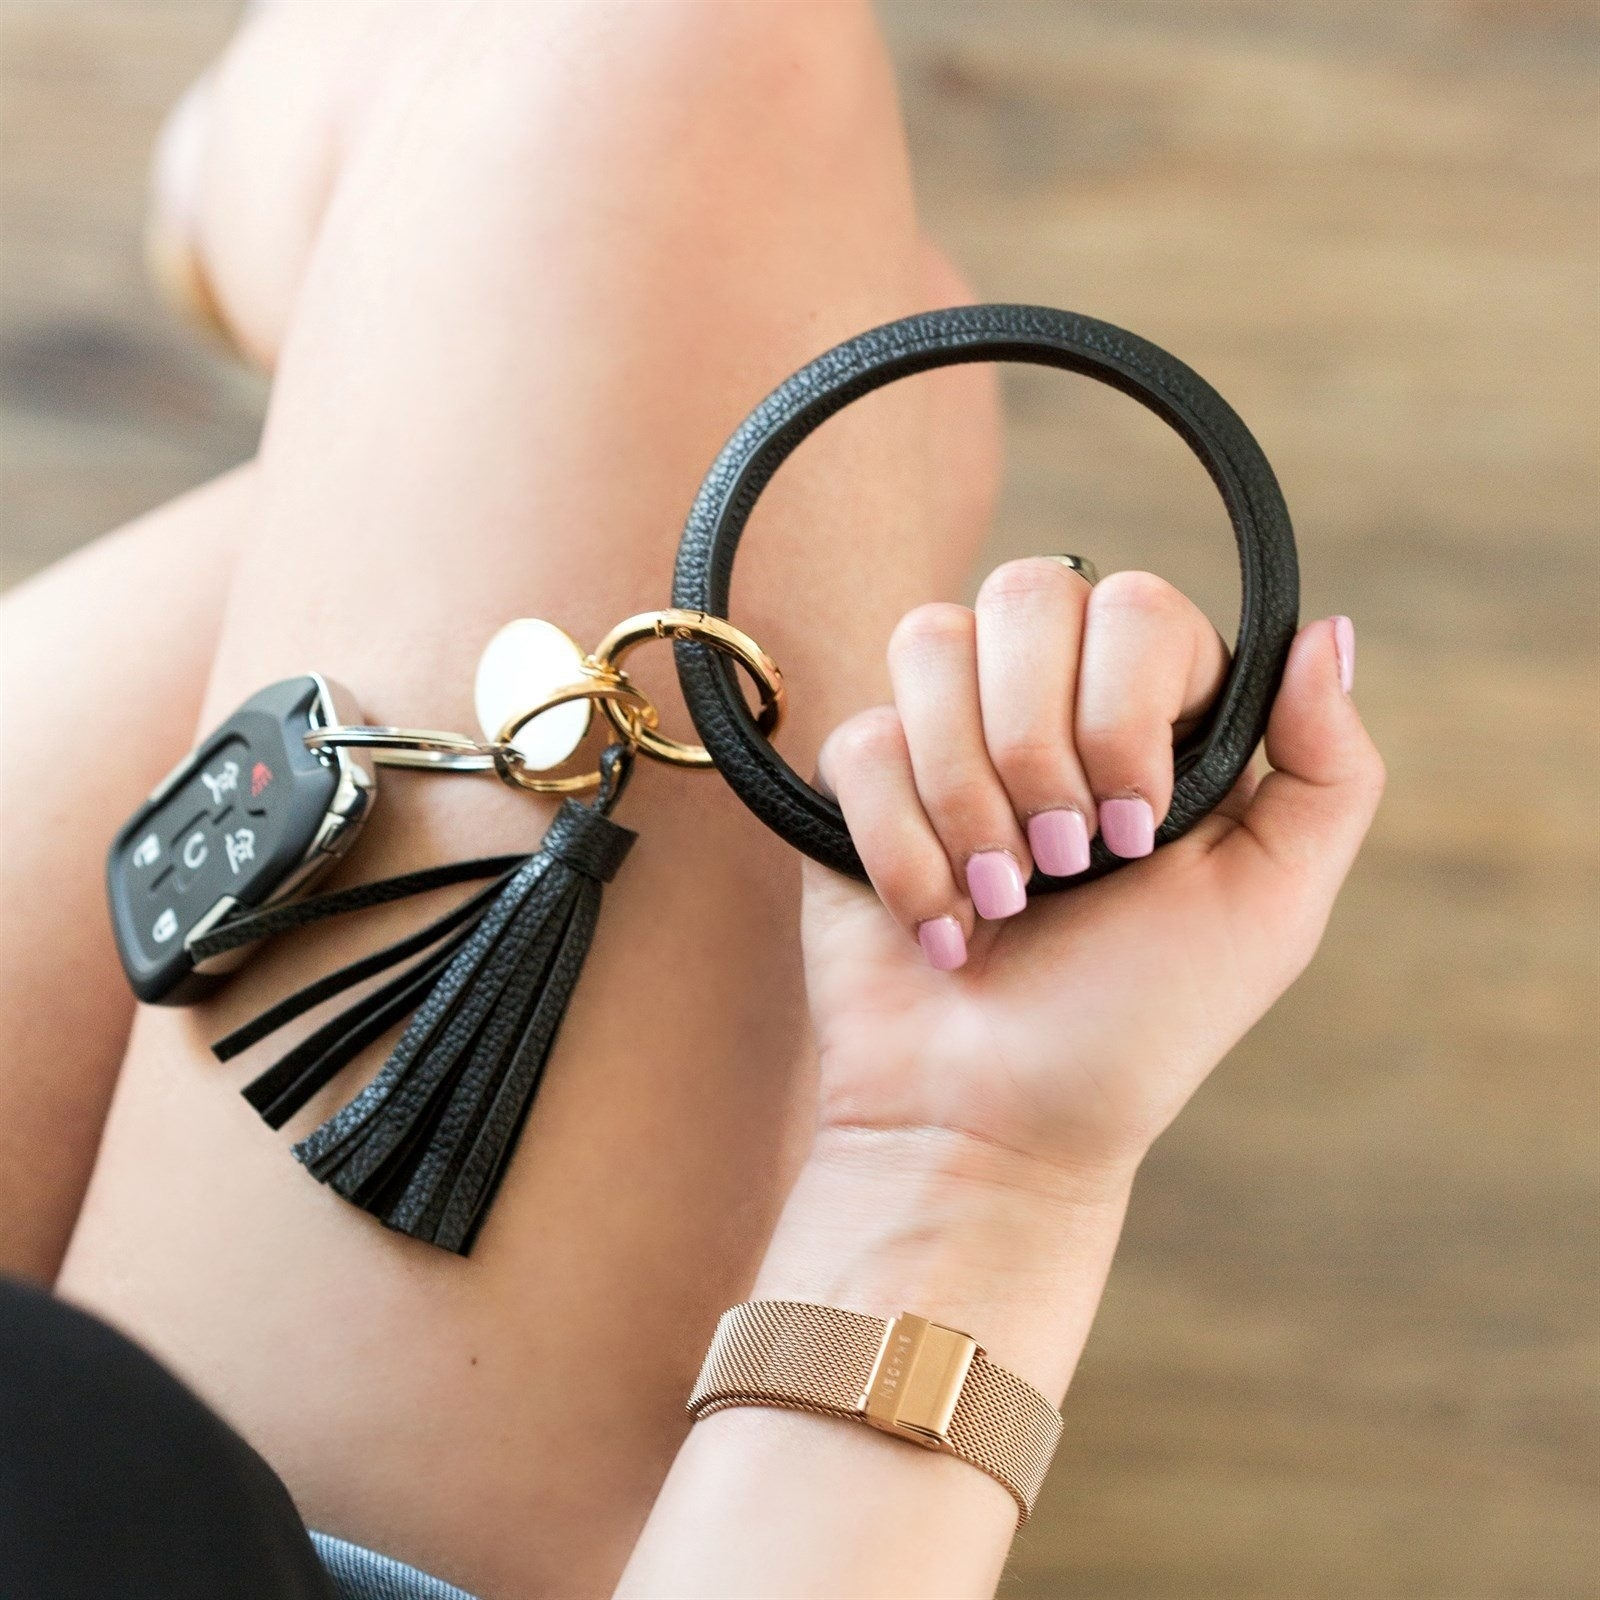 A person holding the keyring bangle